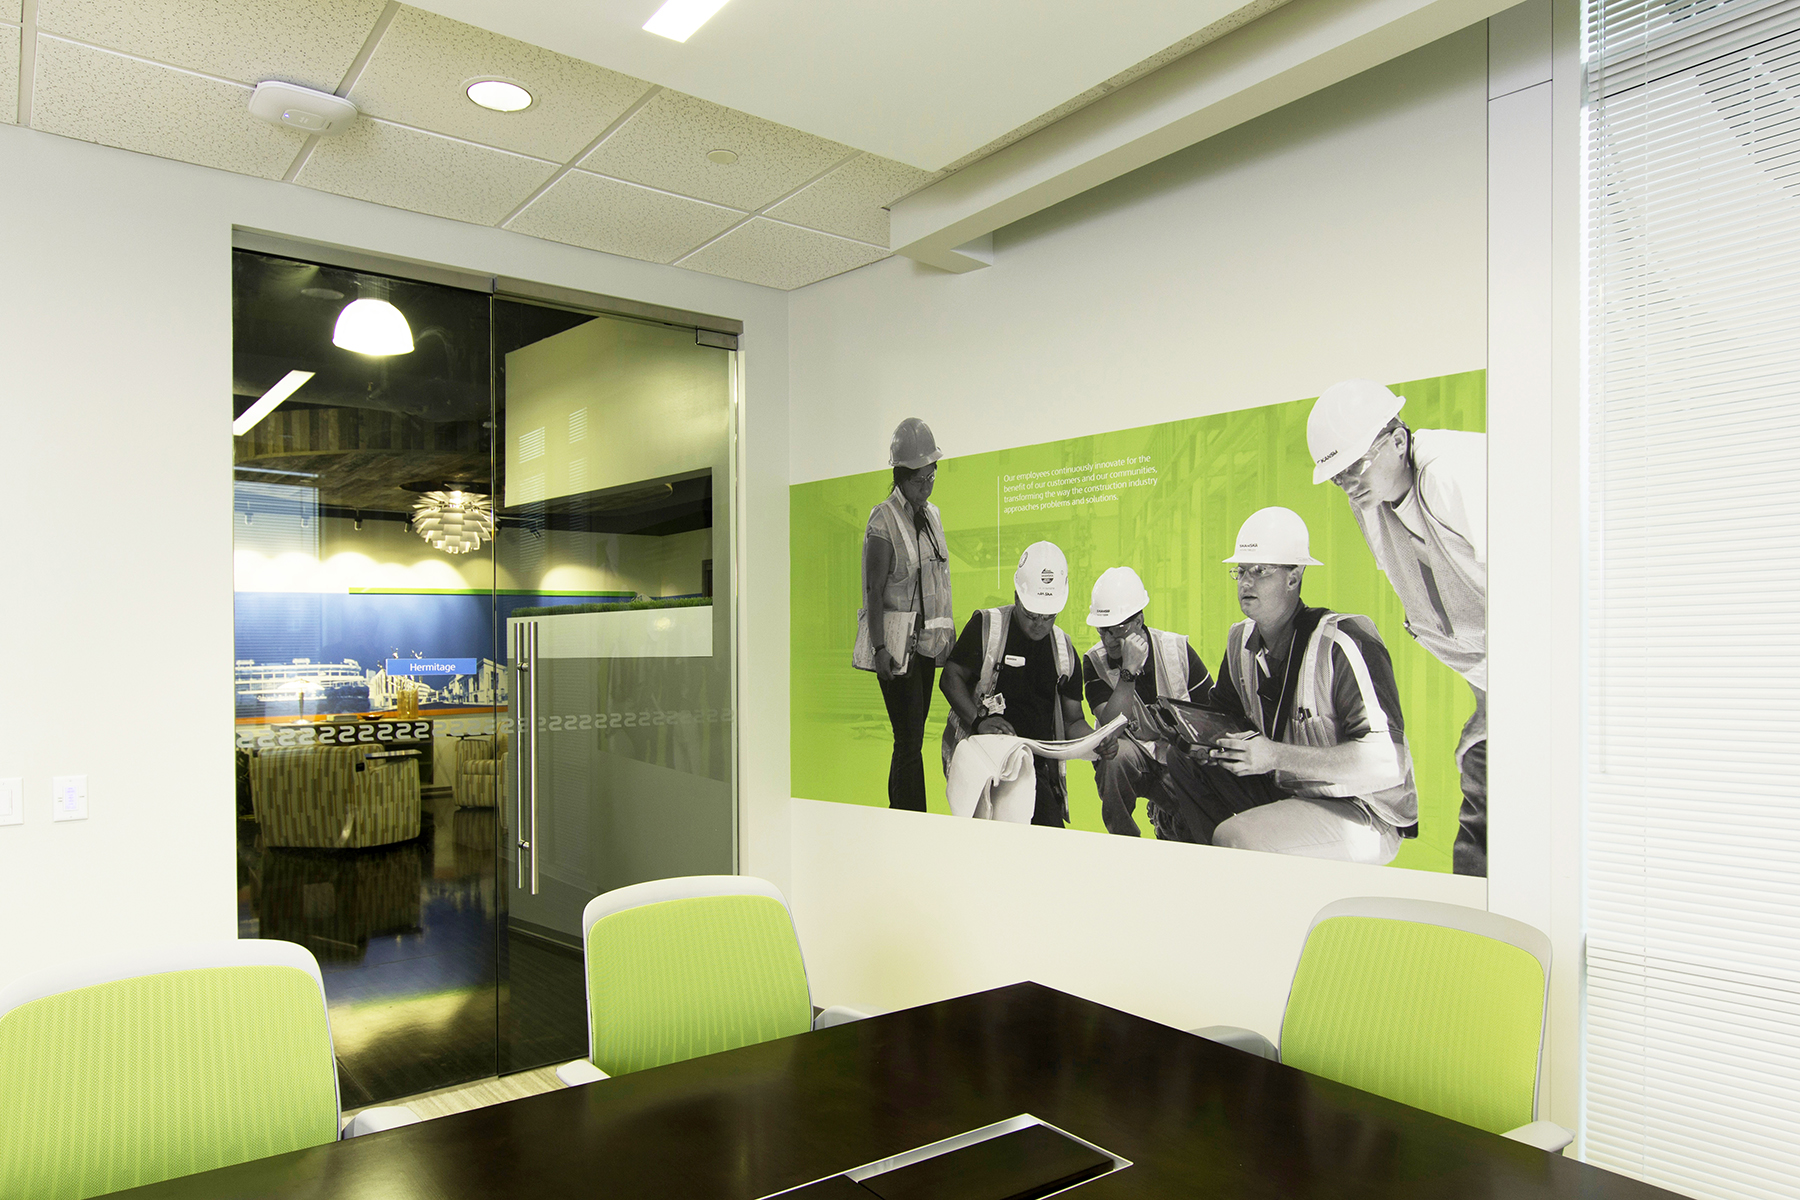 Graphics connect spaces and tell stories of sustainable practices